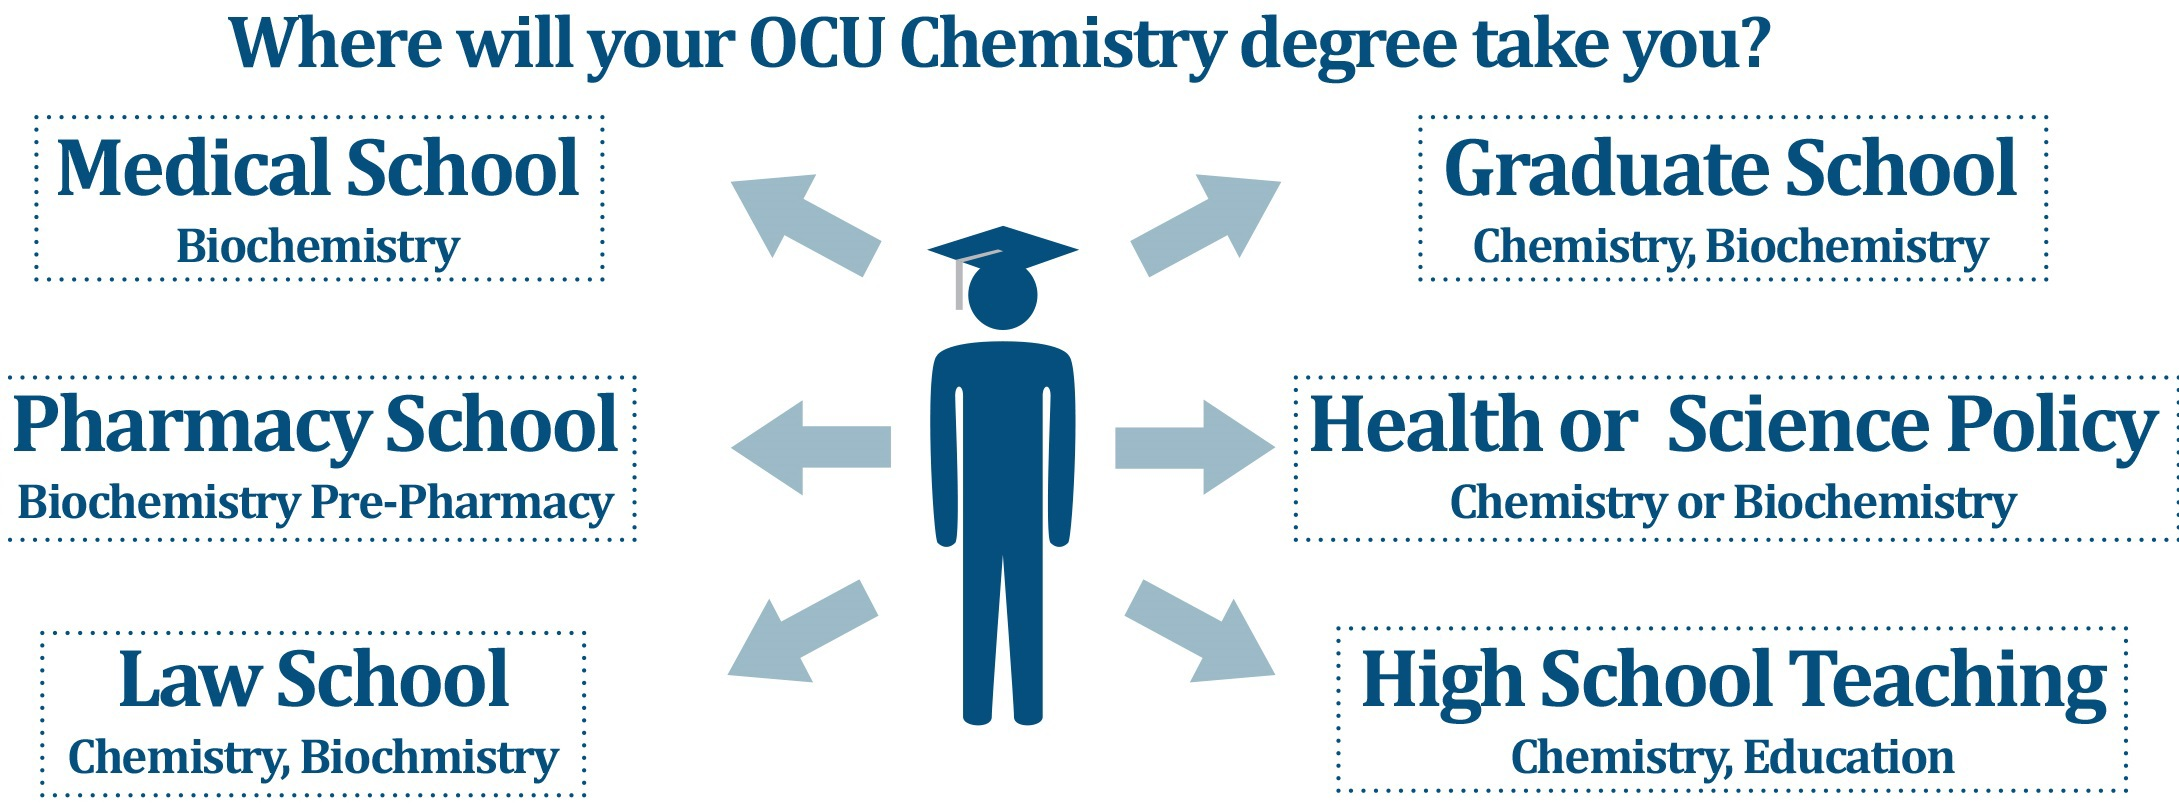 careers oklahoma city university an ocu chemistry or biochemistry degree is a springboard many different careers graduates attend pharmacy school medical school physician s assistant